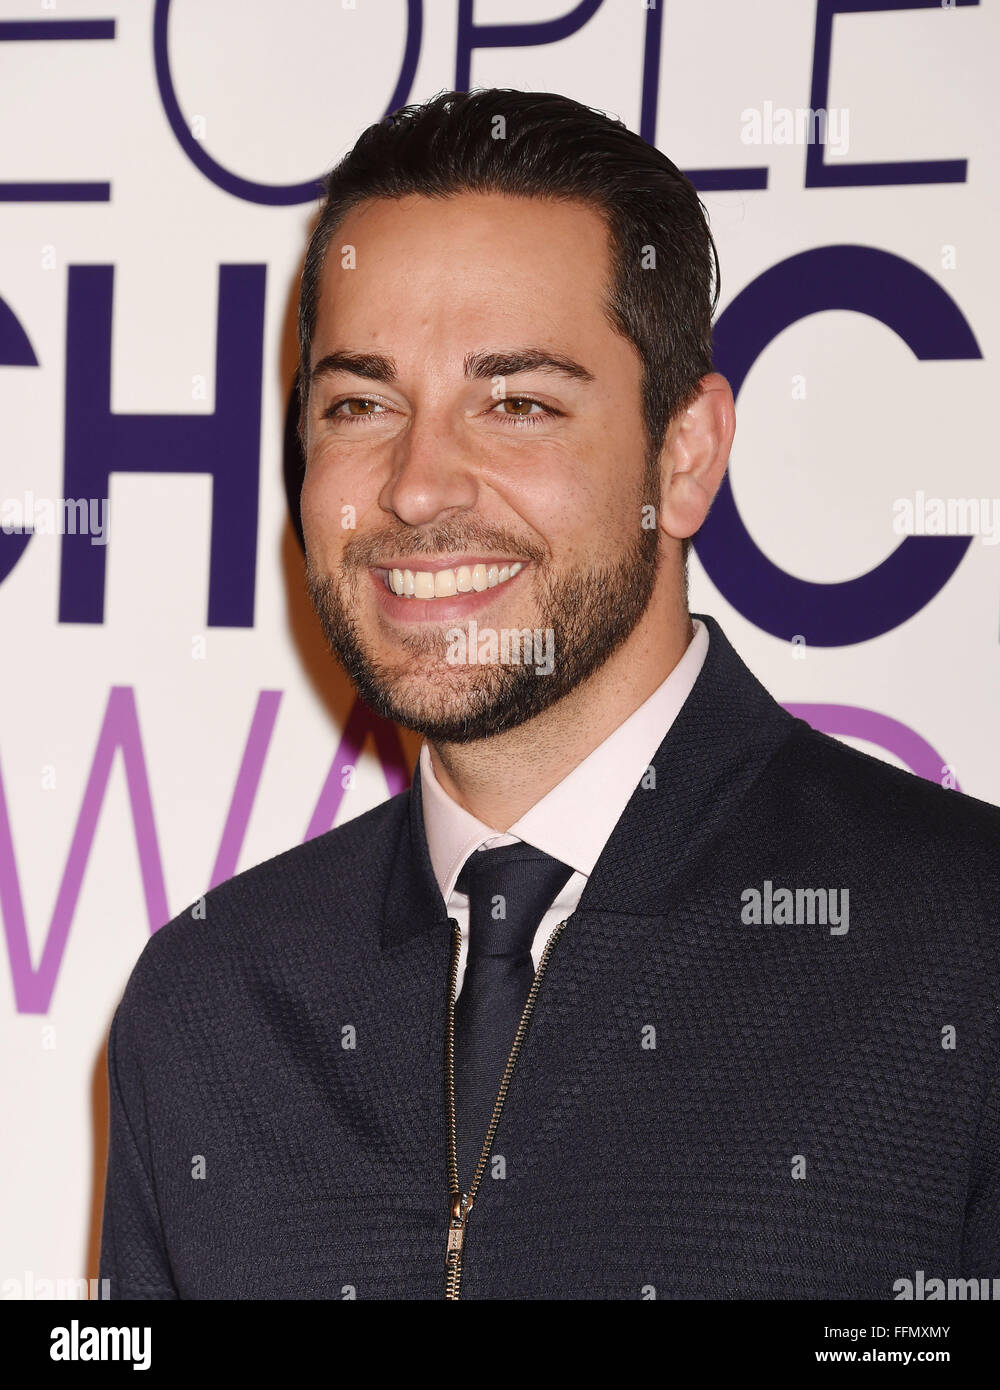 Actor Zachary Levi attends the People's Choice Awards 2016 - Nominations Press Conference at The Paley Center - Stock Image